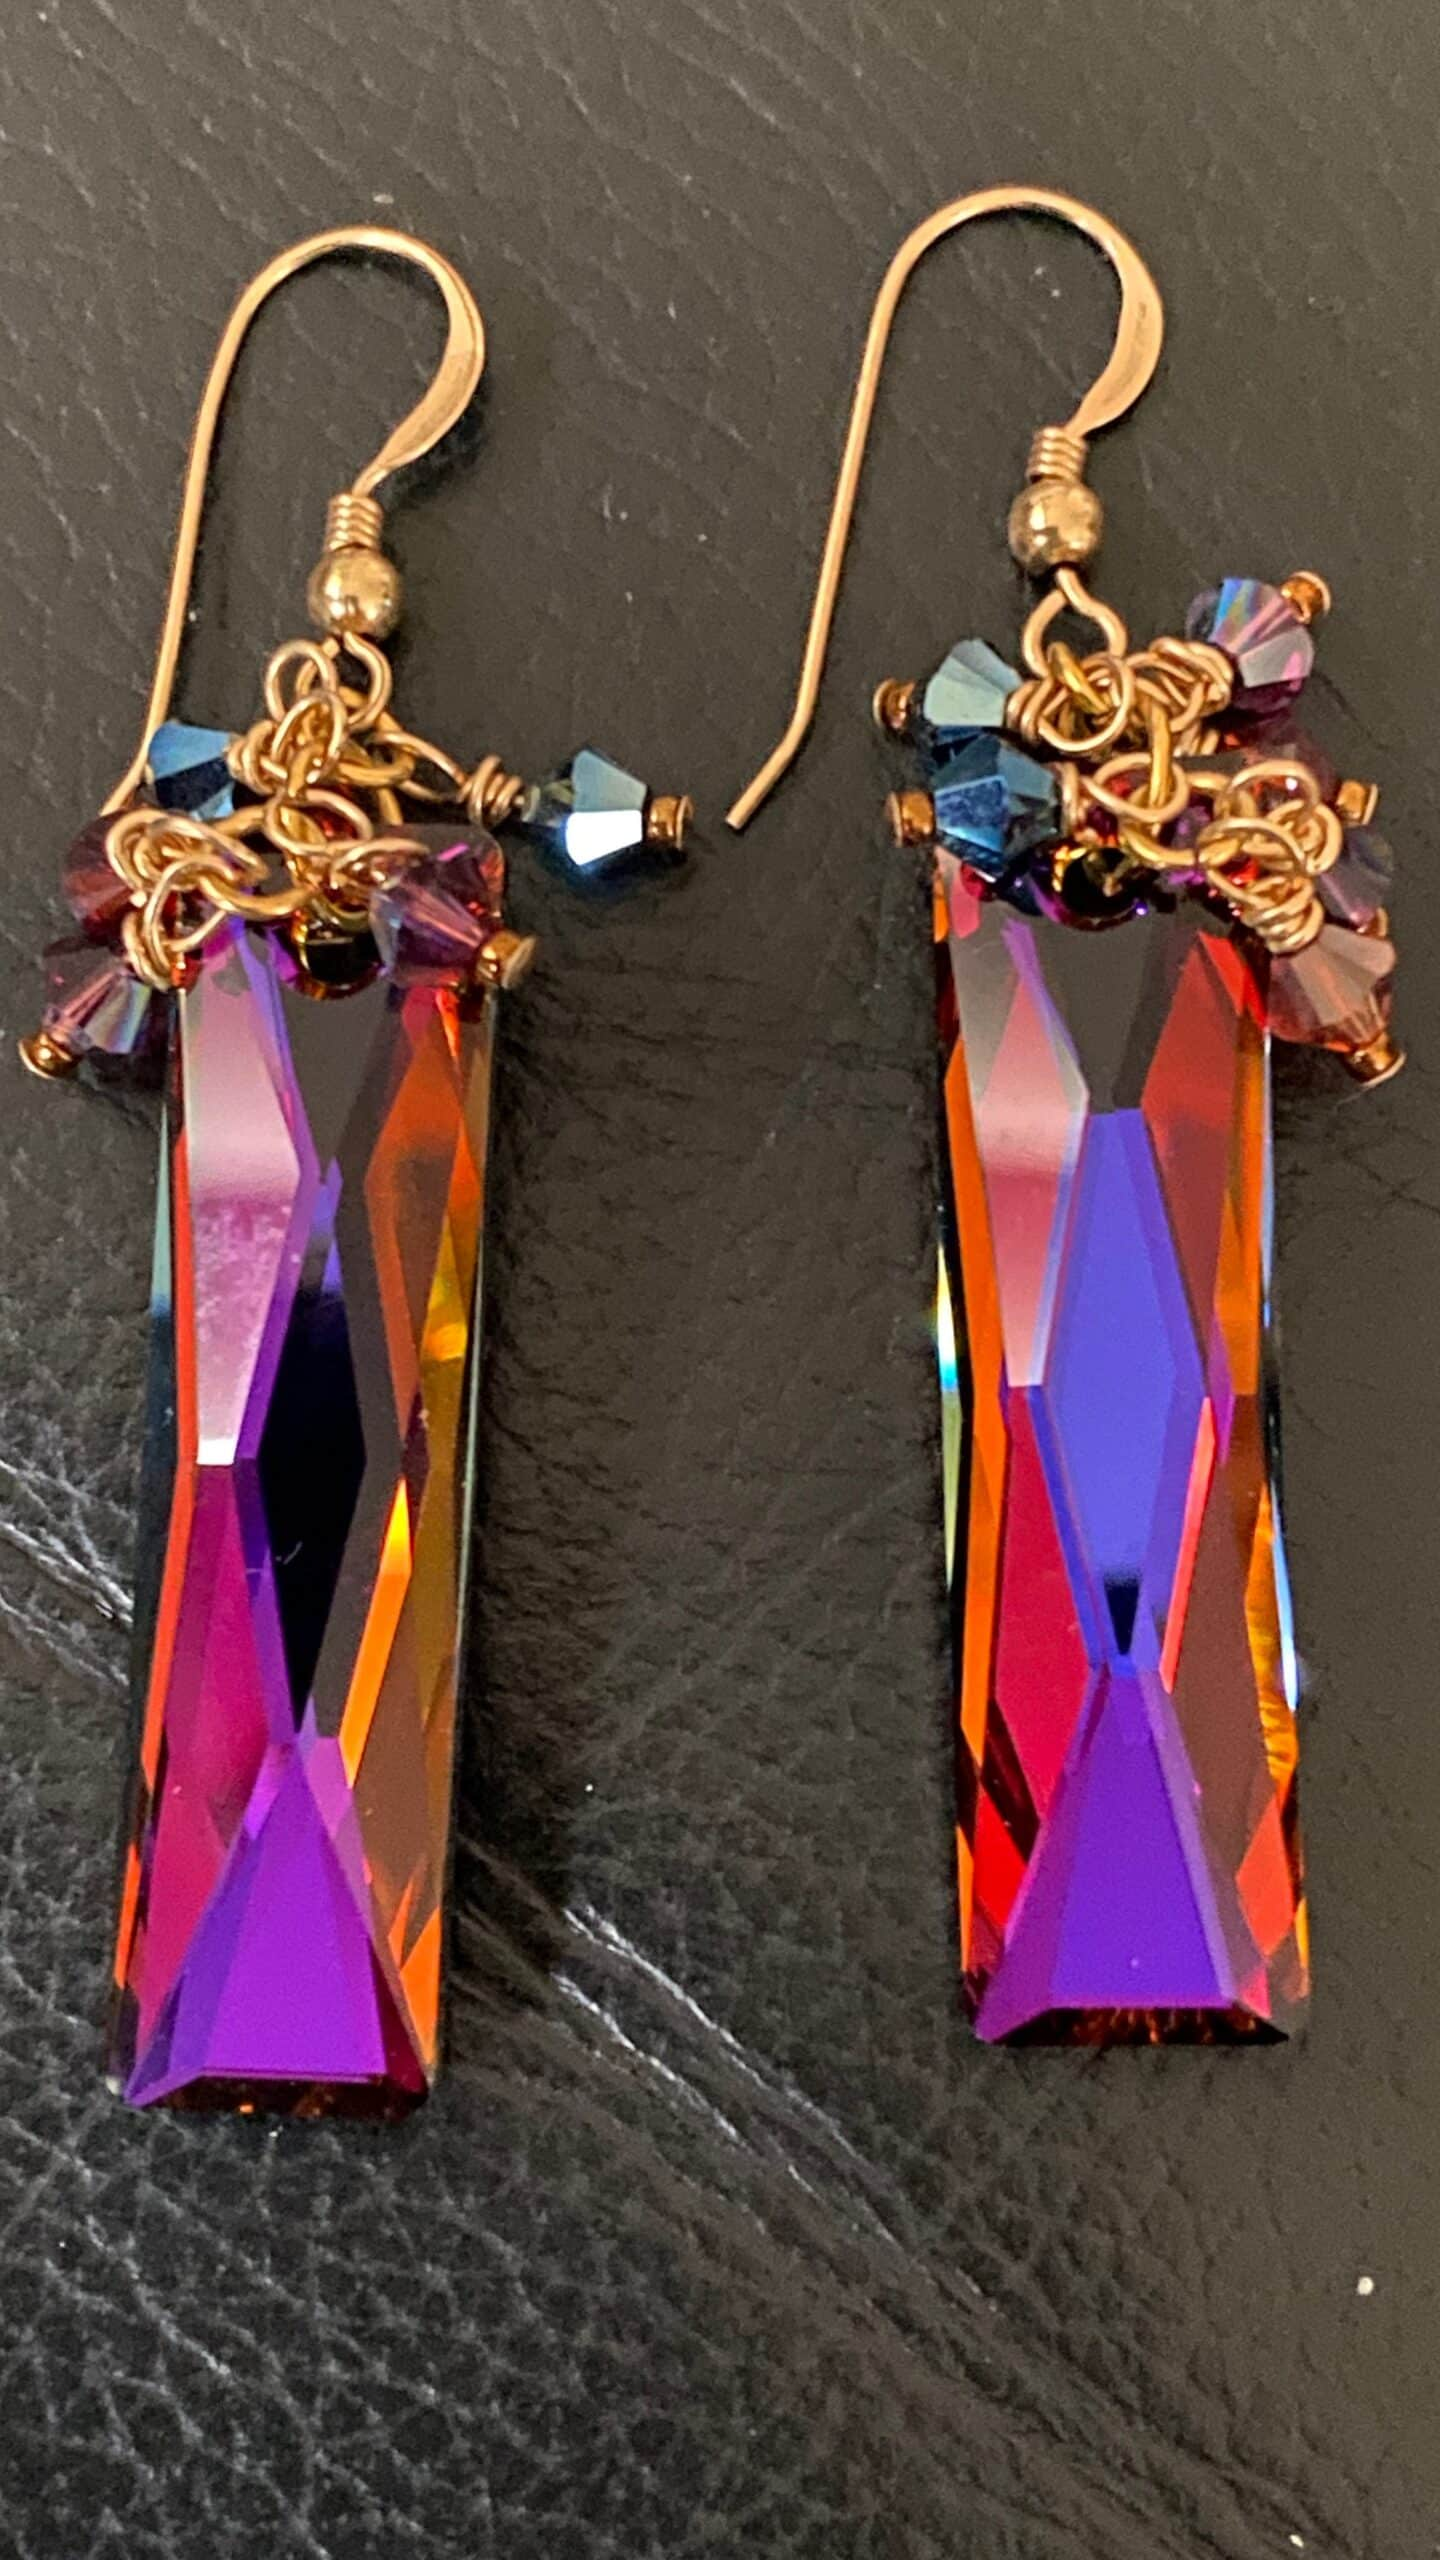 Swarovski Baguette Crystal And Bicones Fringe Earrings. 14 Ct Gold Filled Wires By Covet And Desire